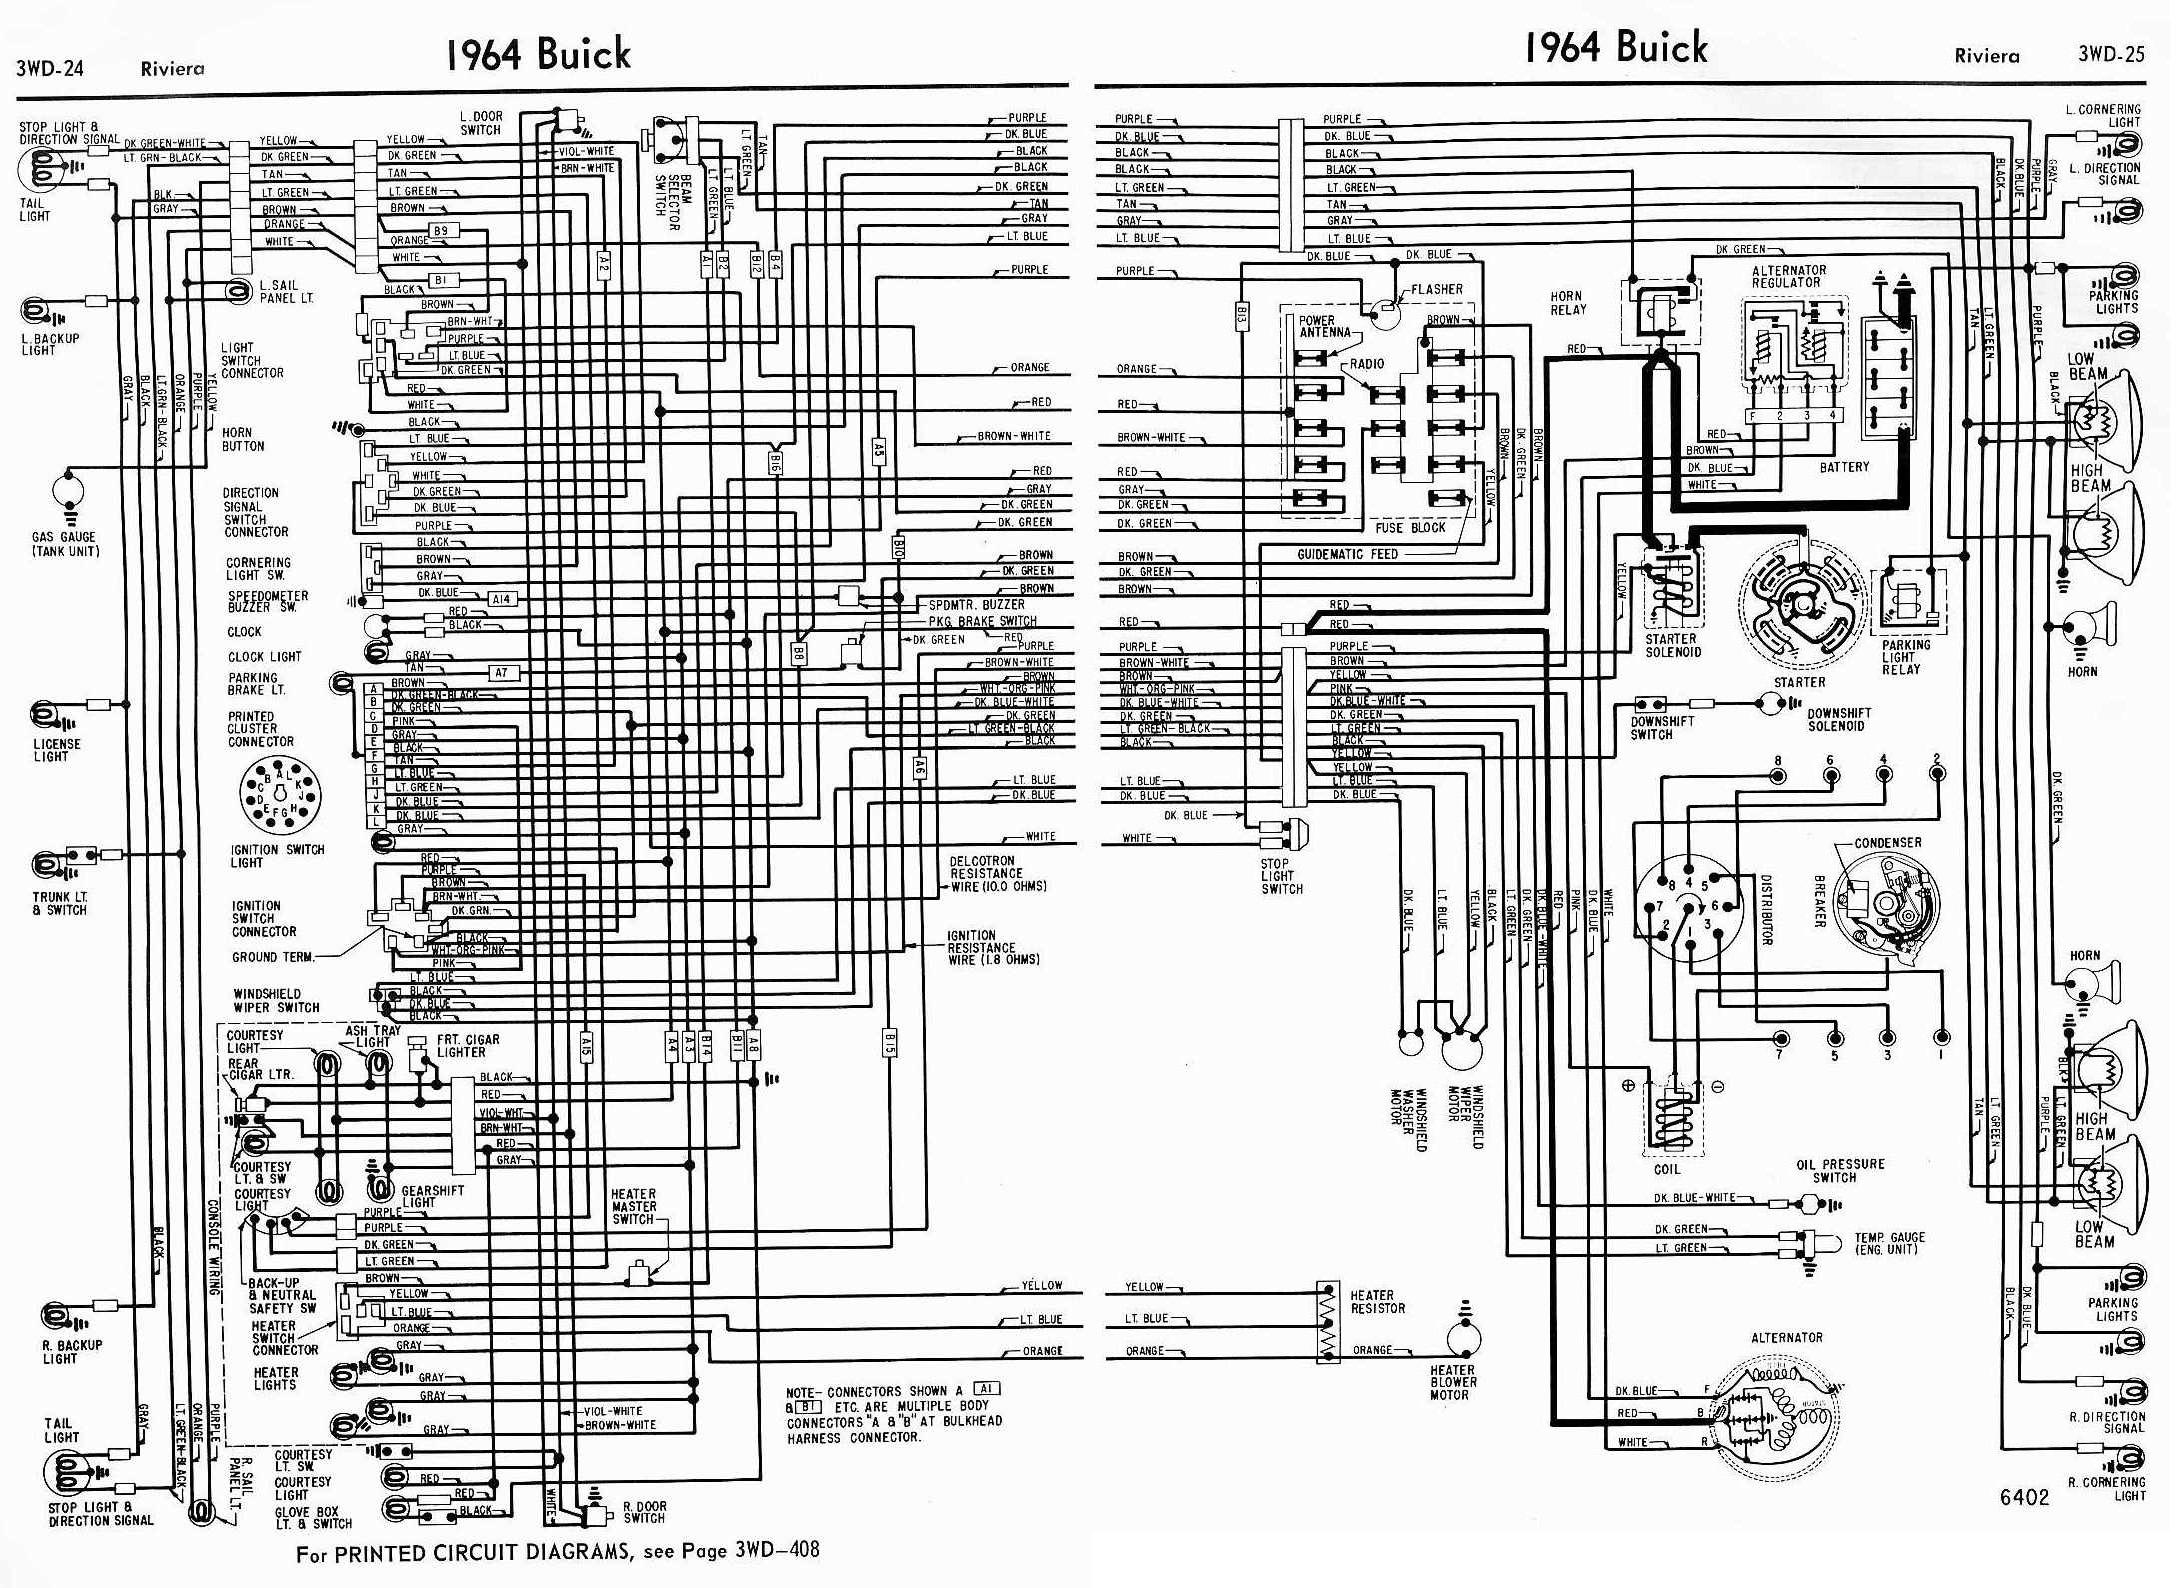 Work Light Wiring Diagram Halo Lighting Help Installed Lights But Trying To Get Them Rh Forums Aaca Org Basic Electrical Diagrams Can